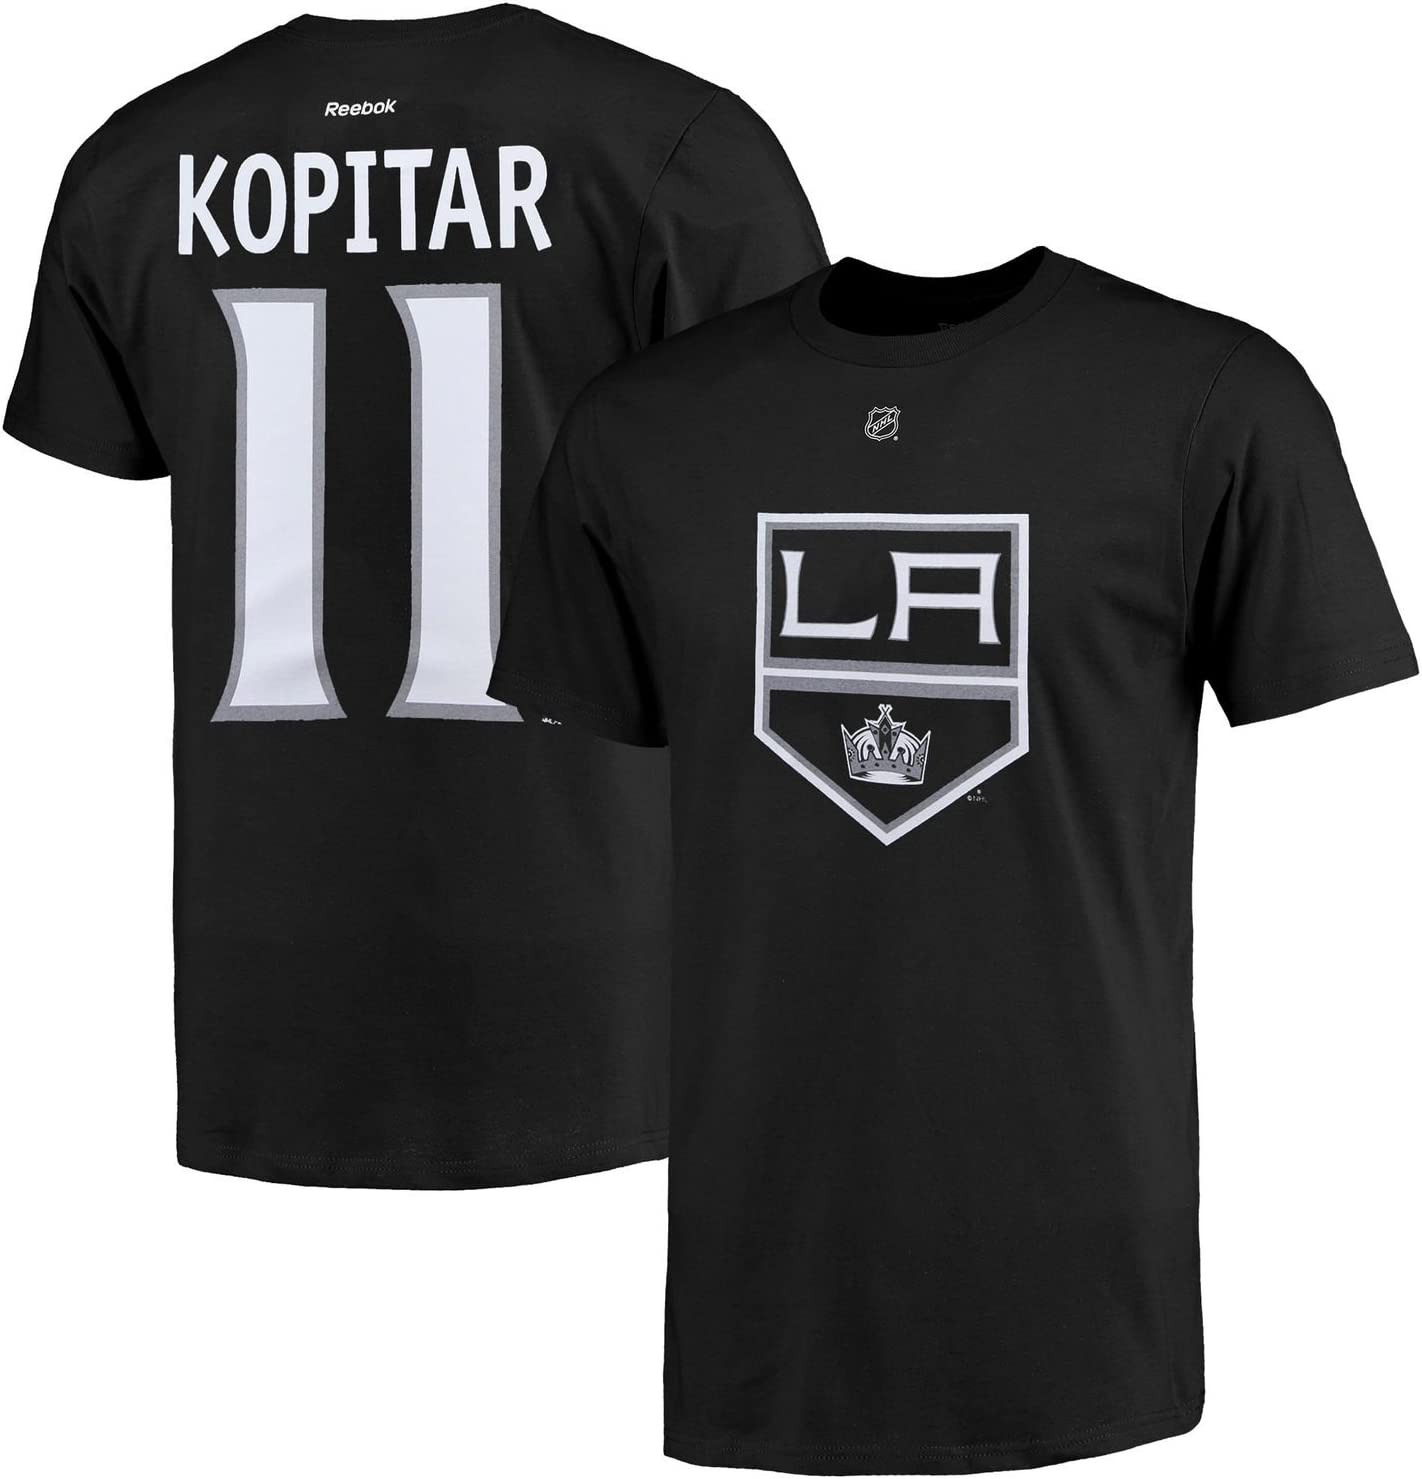 Outerstuff NHL Youth Team Color Player Name and Number Jersey T-Shirt